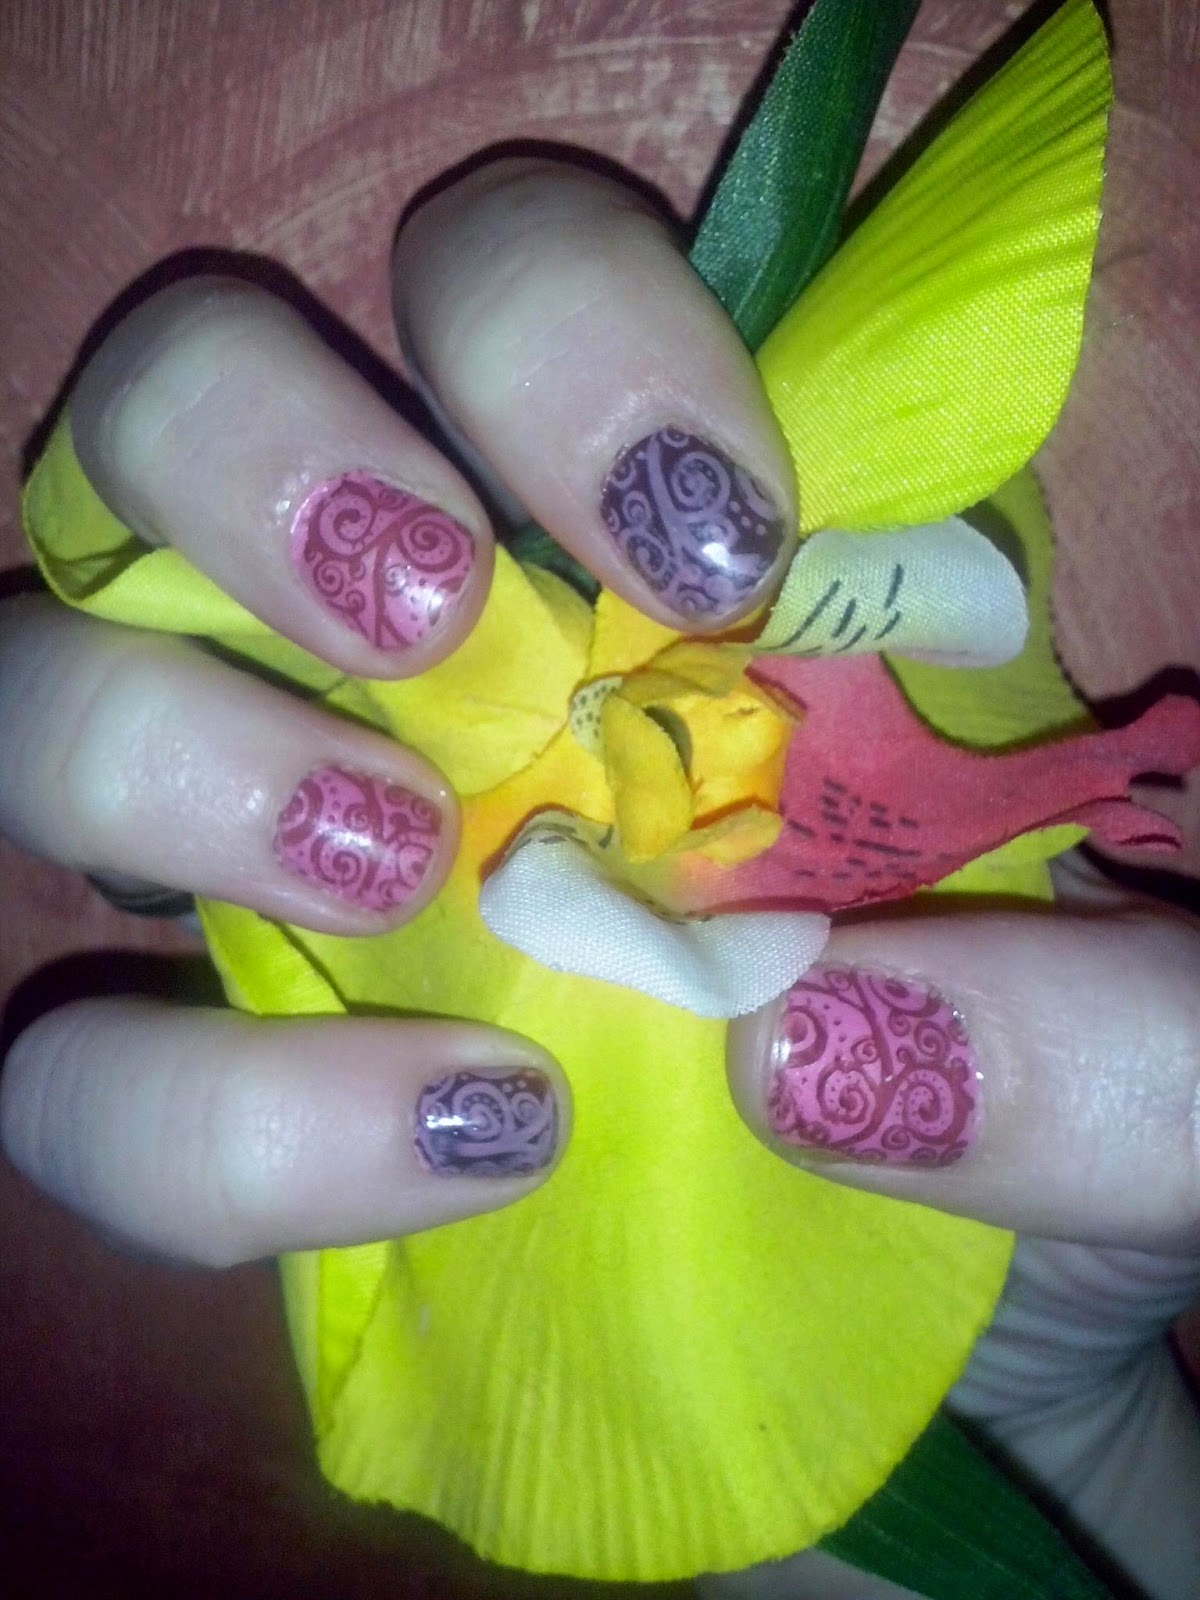 eba nails design: 2014